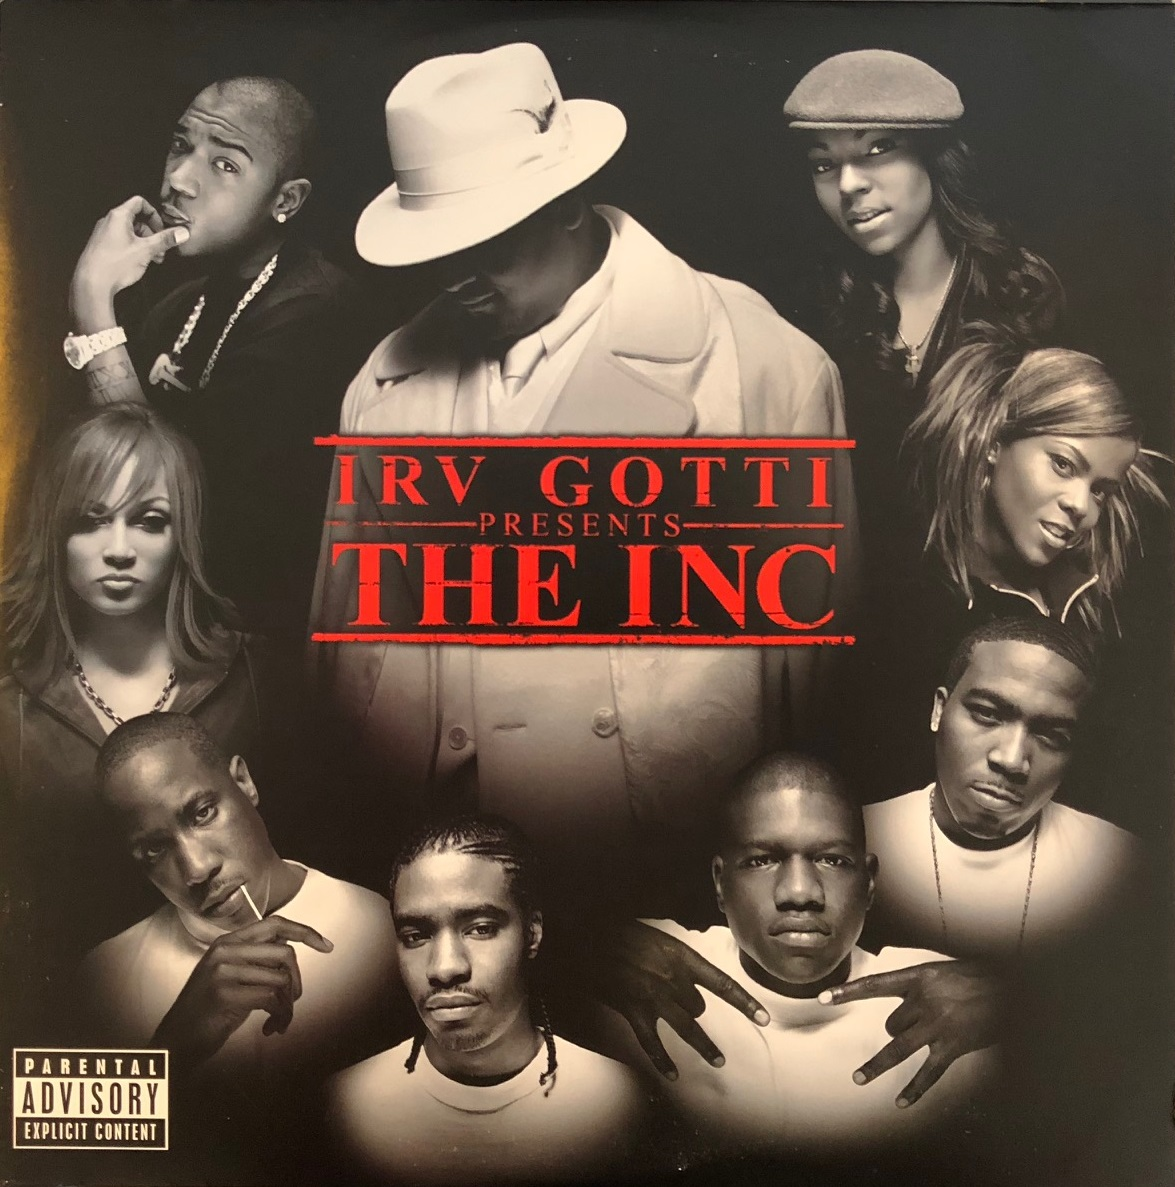 VARIOUS / IRV GOTTI PRESENTS THE INC.